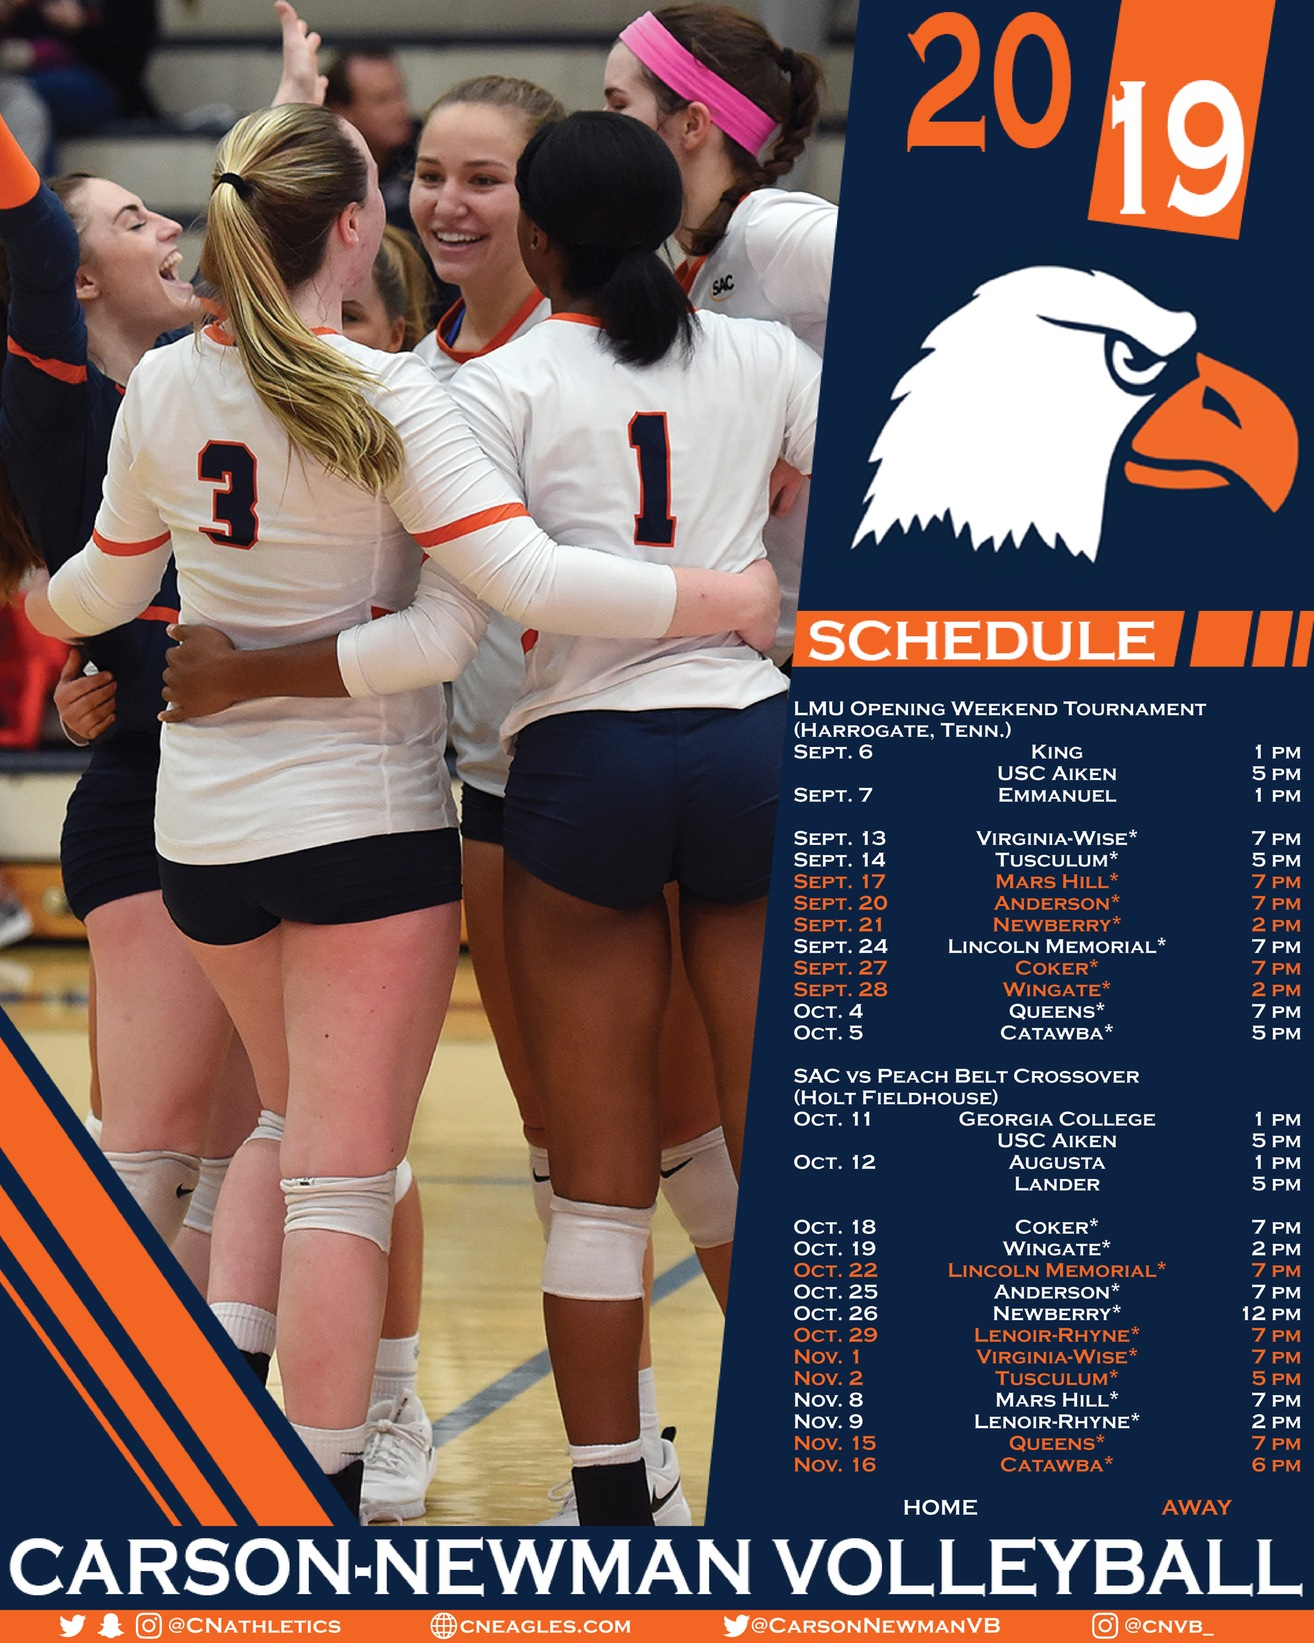 Tournament level schedule on tap for 2019 volleyball season